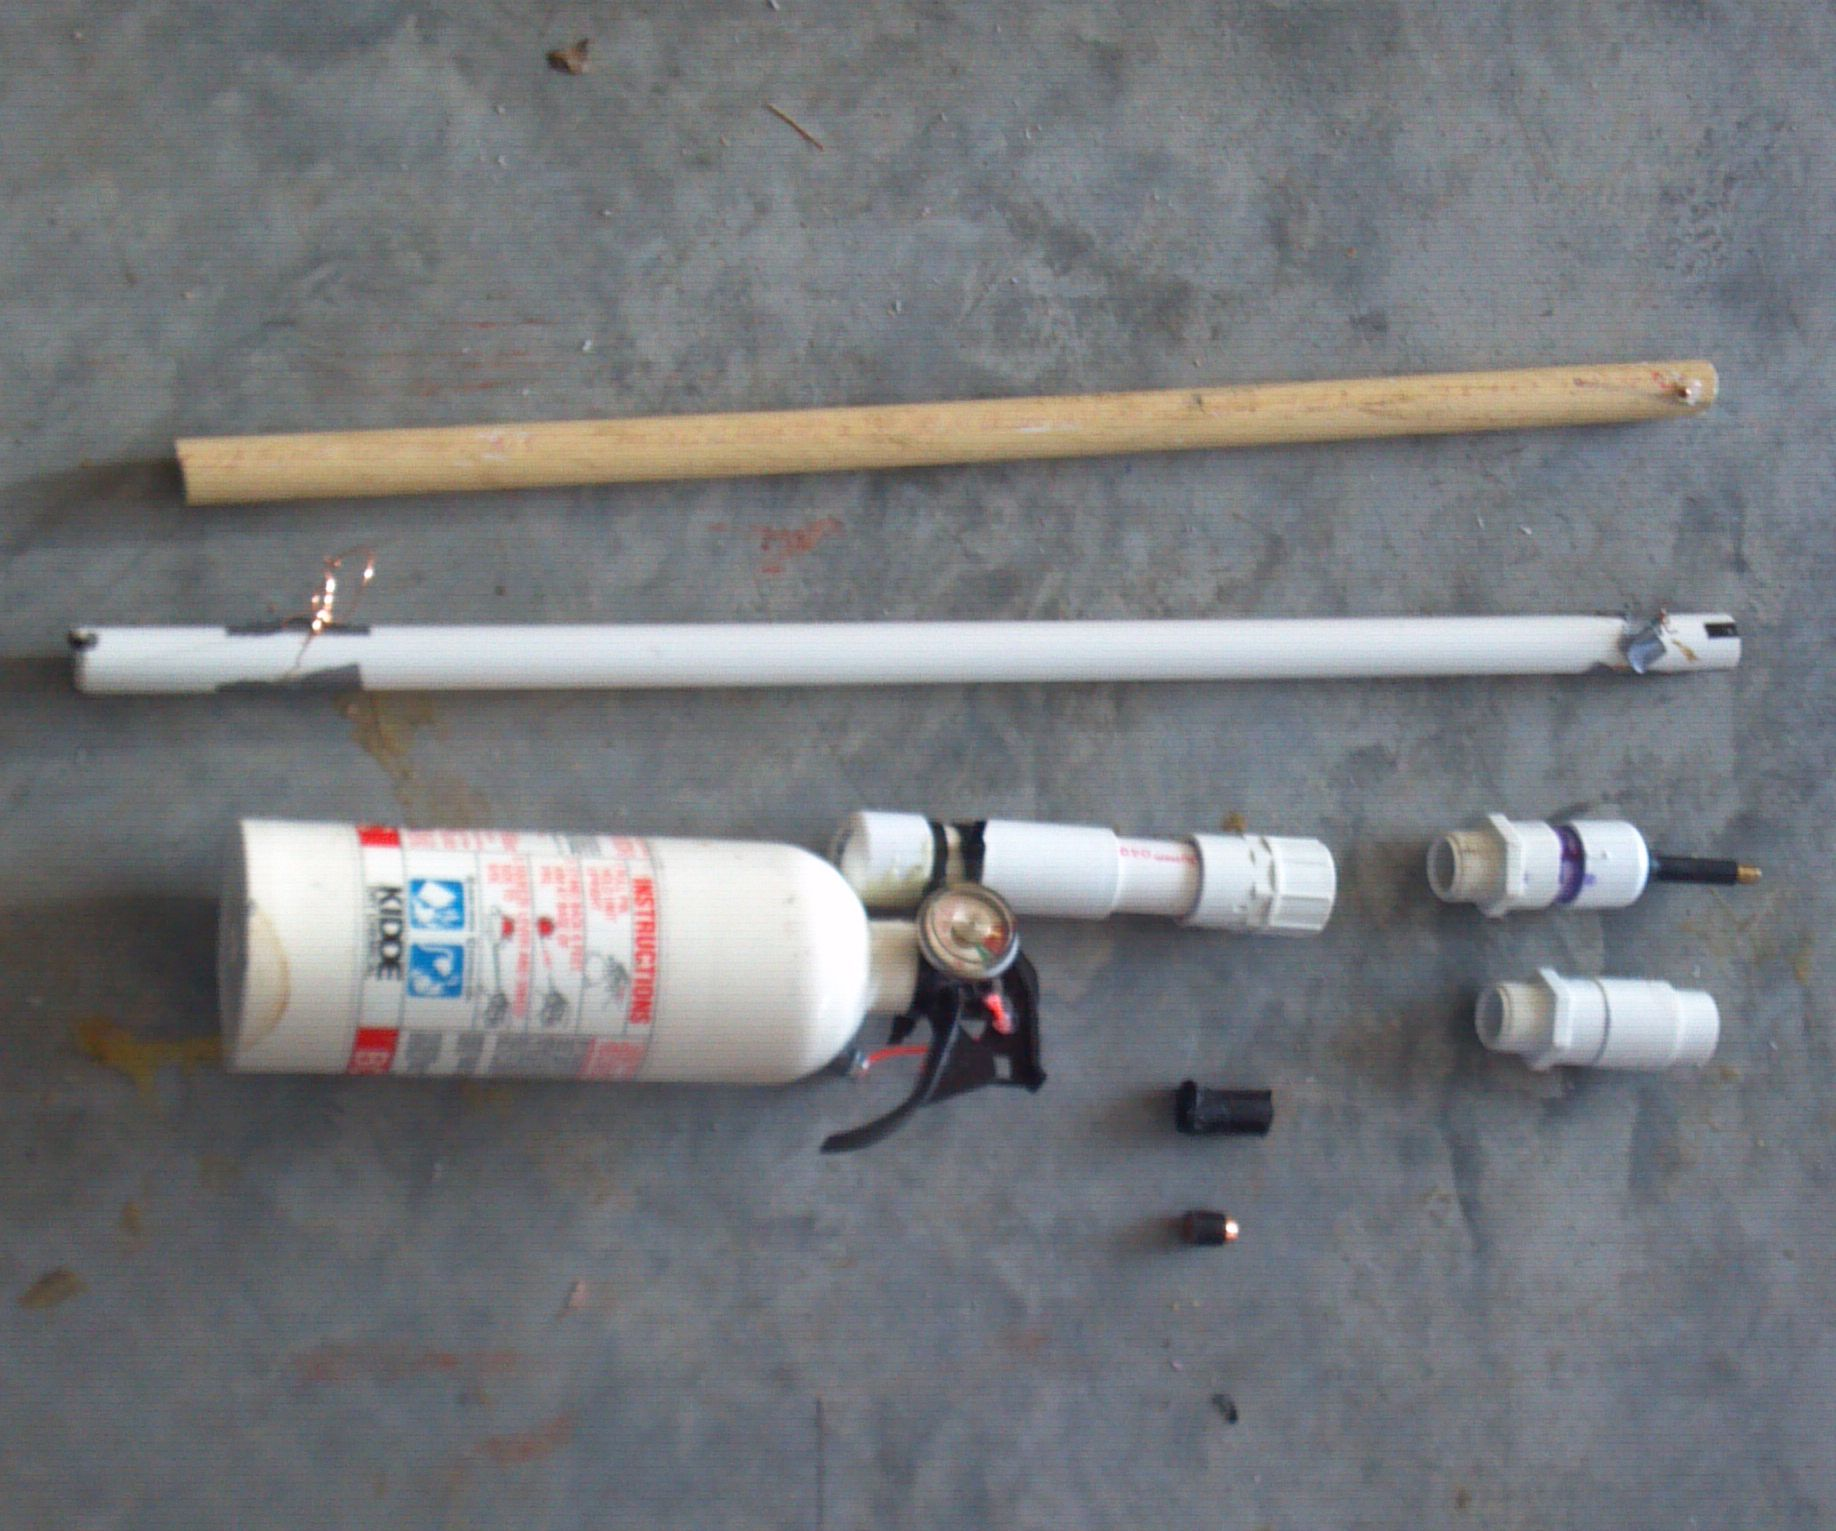 How to make an EASY SEMI-AUTO Spud Gun out of a Fire Extinguisher plus RIFLING